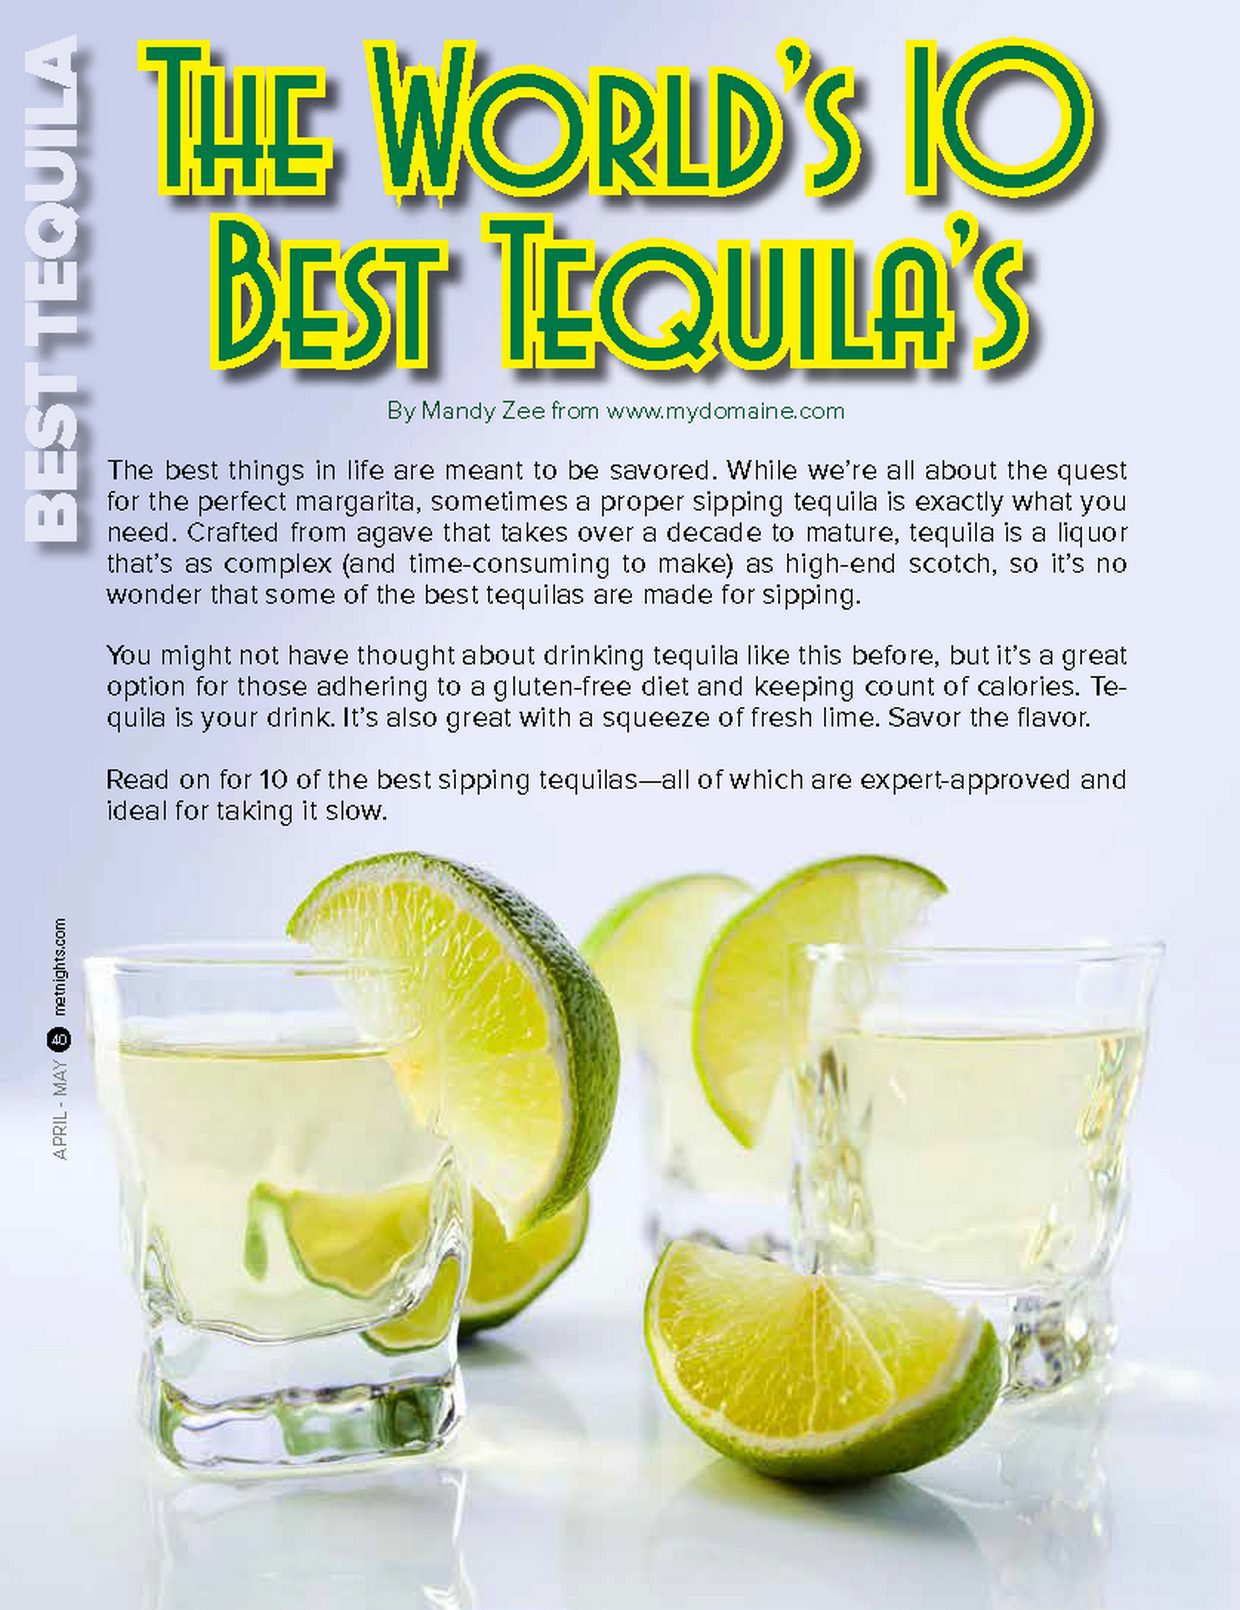 THE WORLDS'S 10 BEST TEQUILA'S